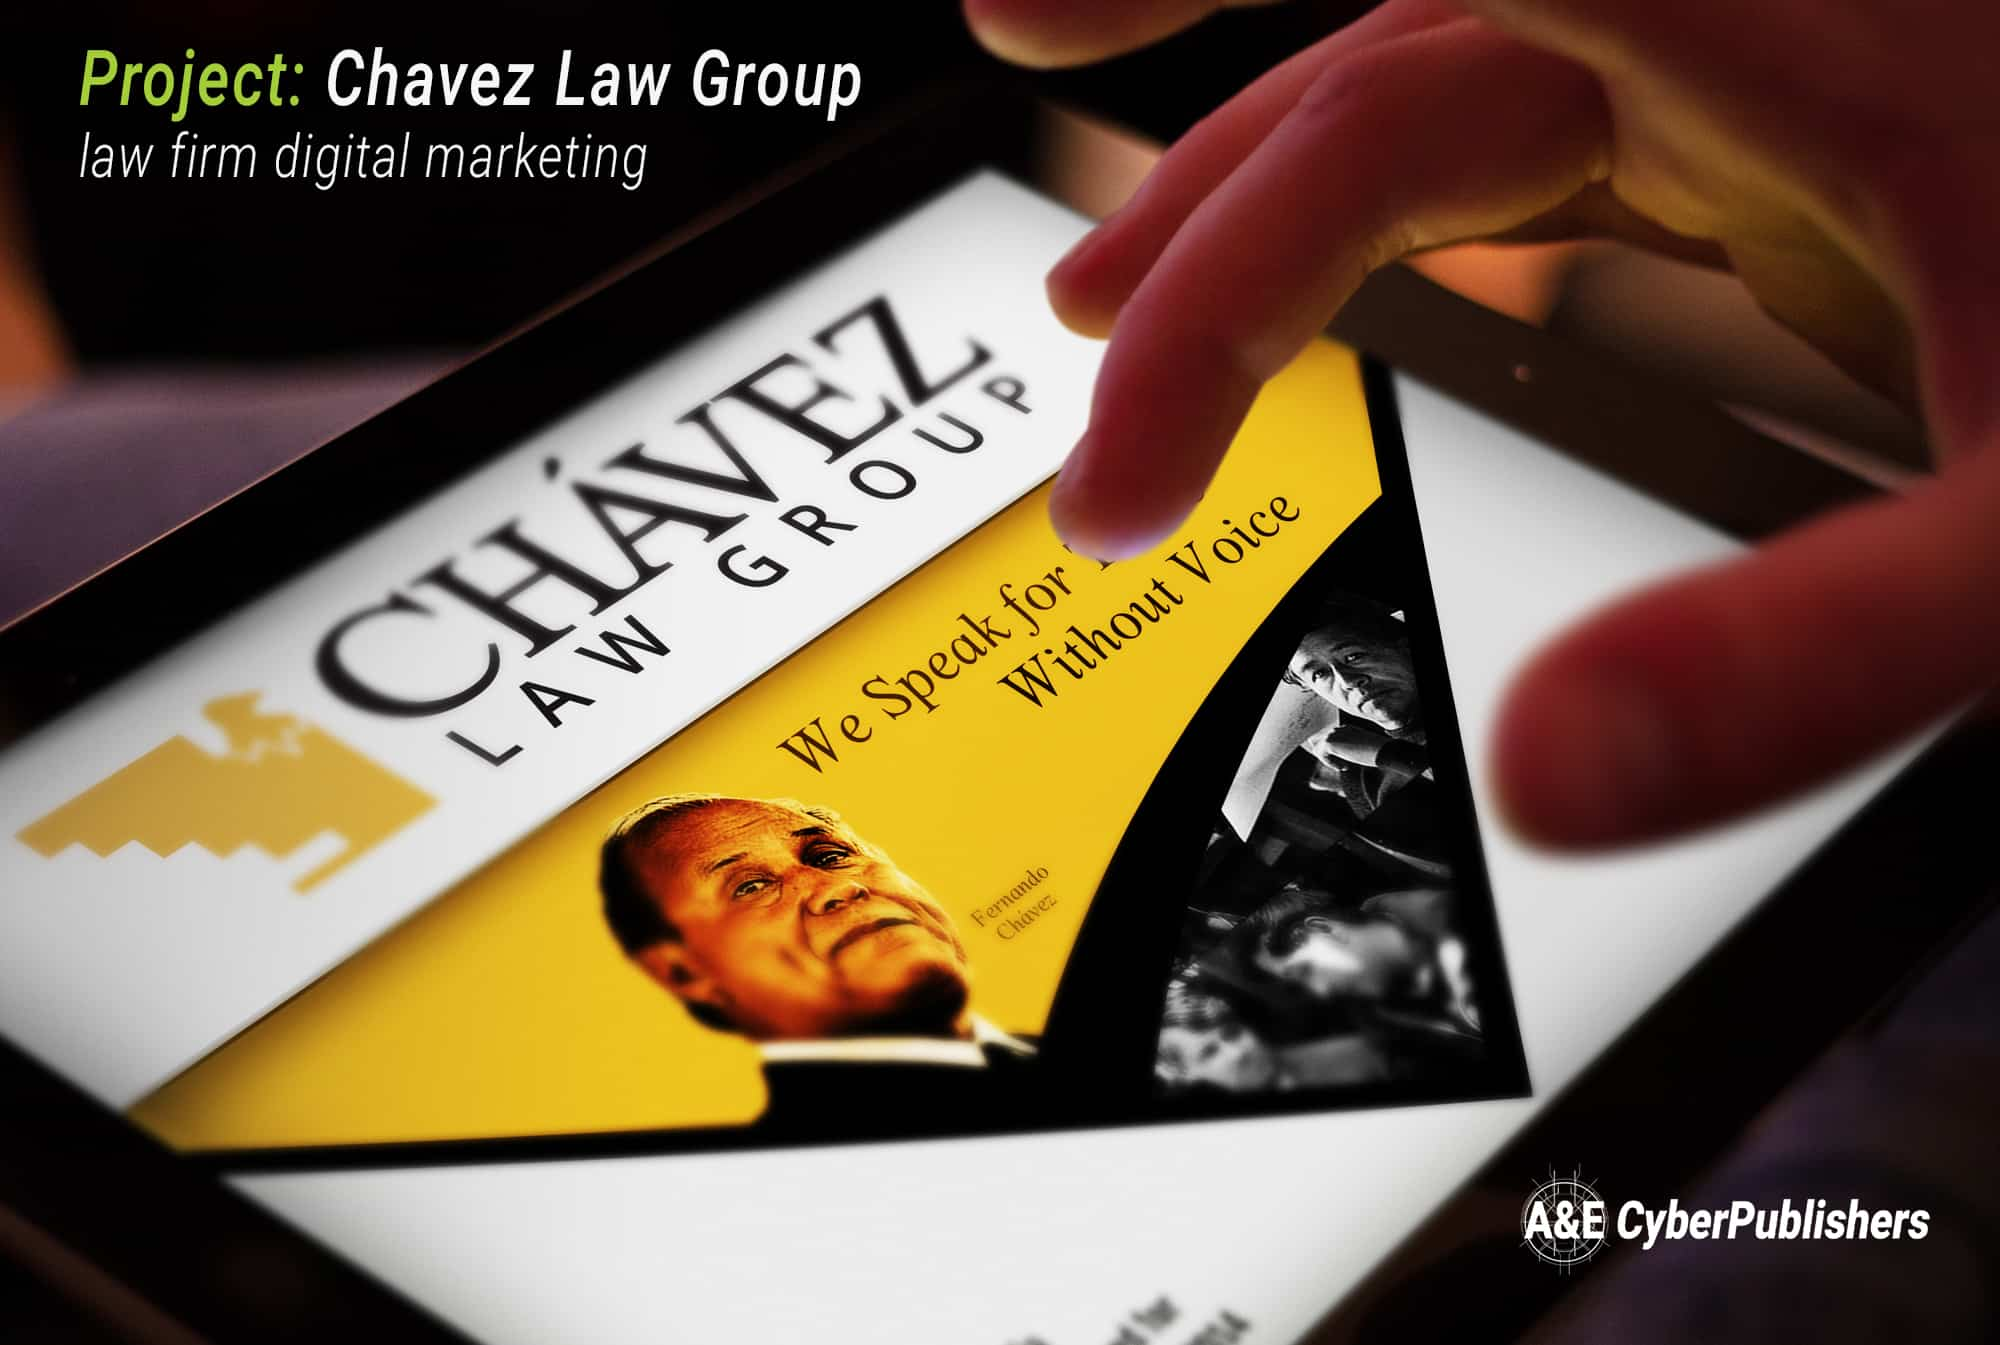 Chavez Law Group